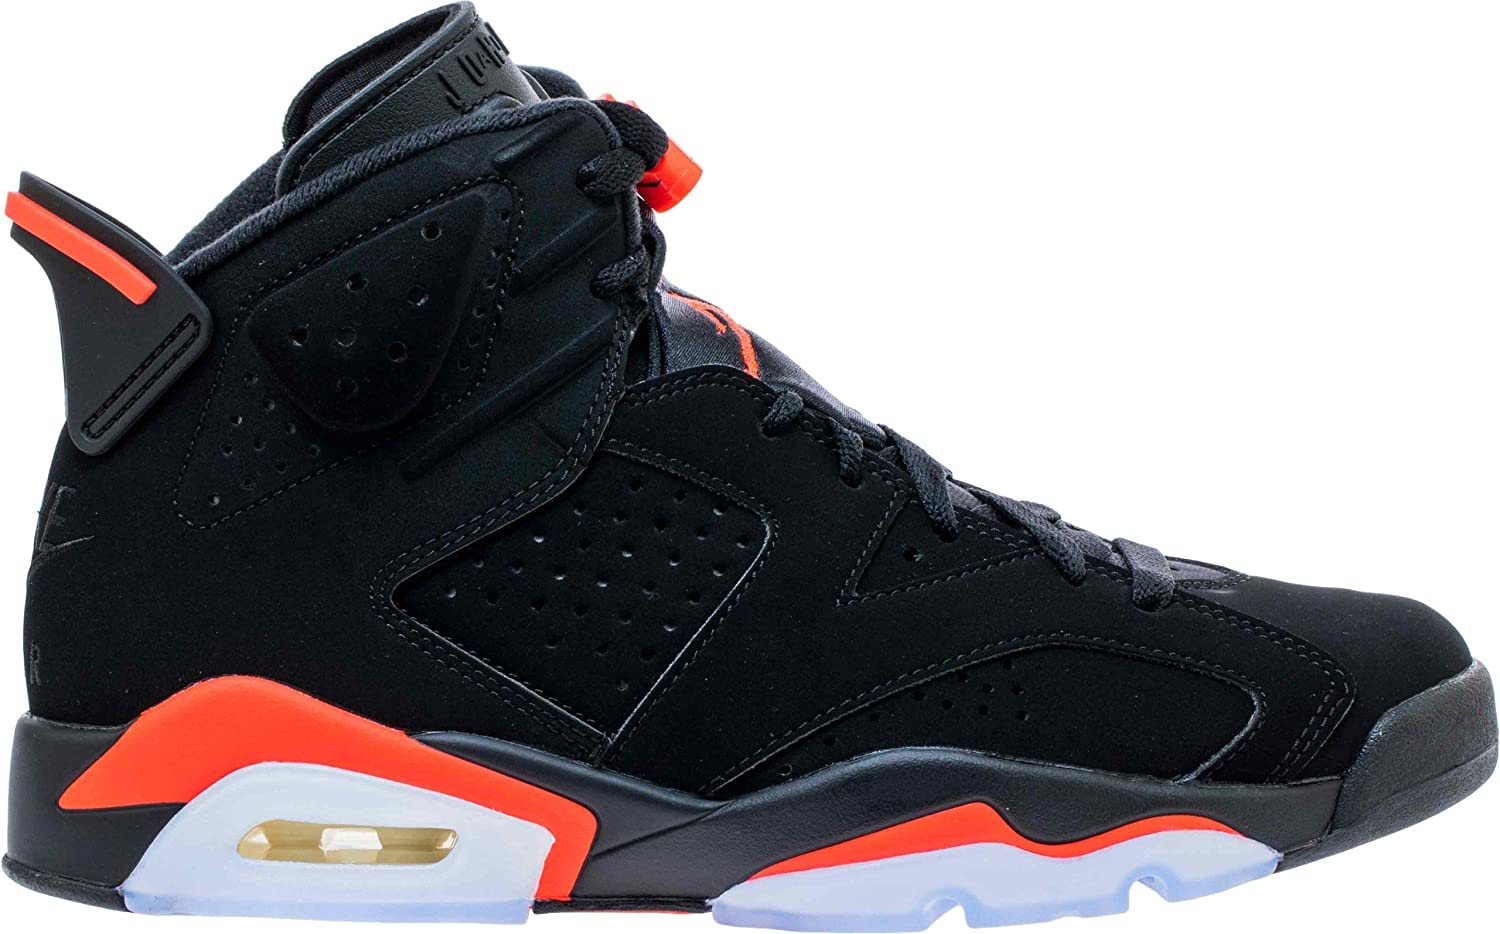 buy popular 9509b 10d4b Nike Air Jordan 6 2019 Retro 384664 060 Black/Infrared